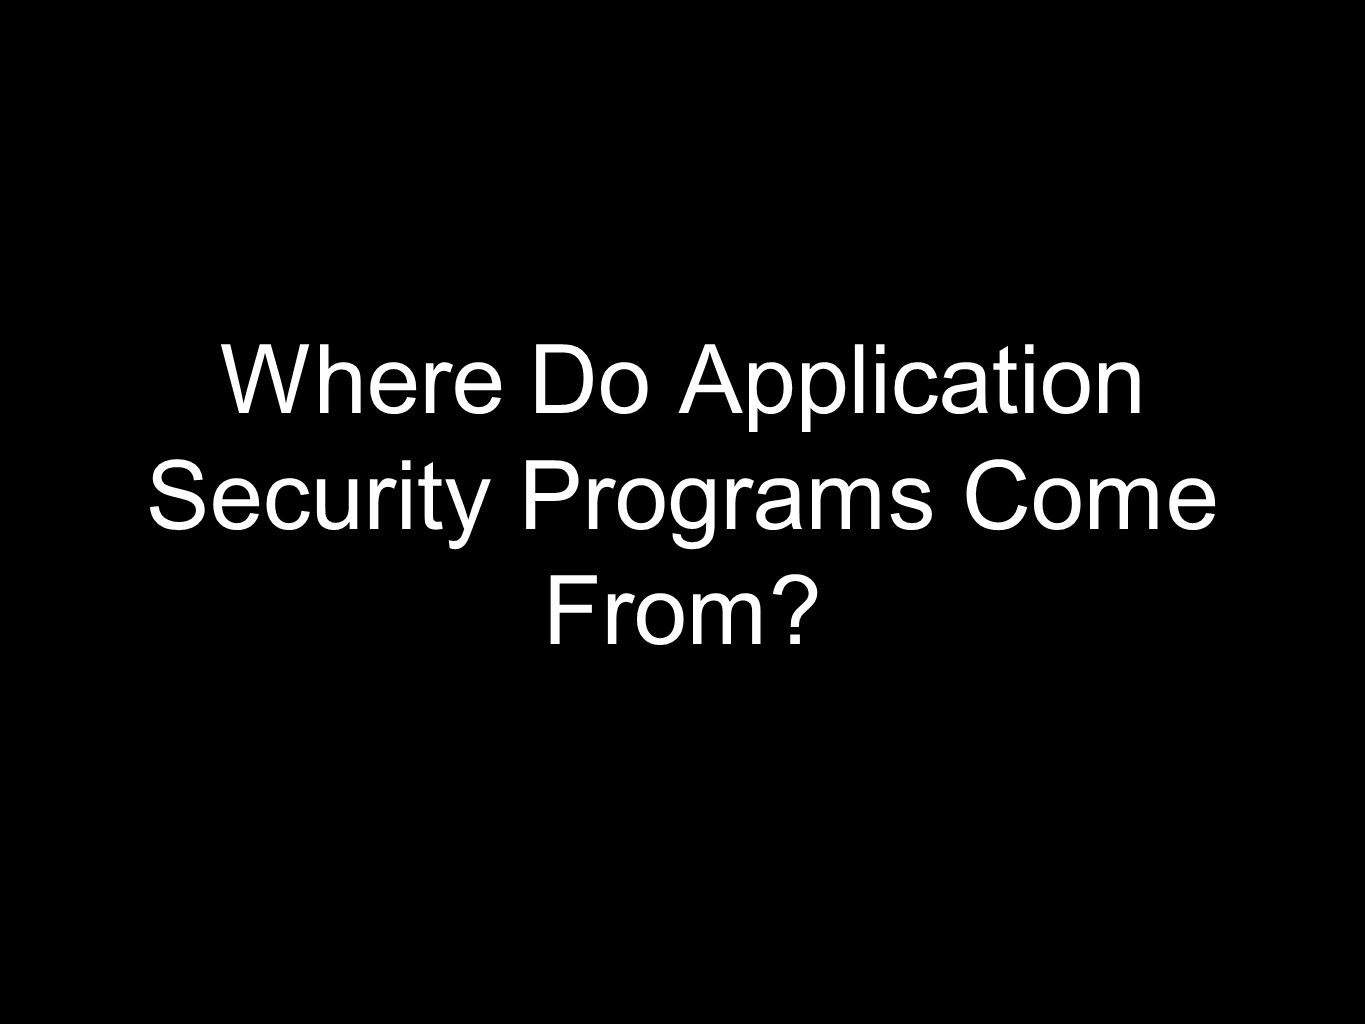 Where Do Application Security Programs Come From